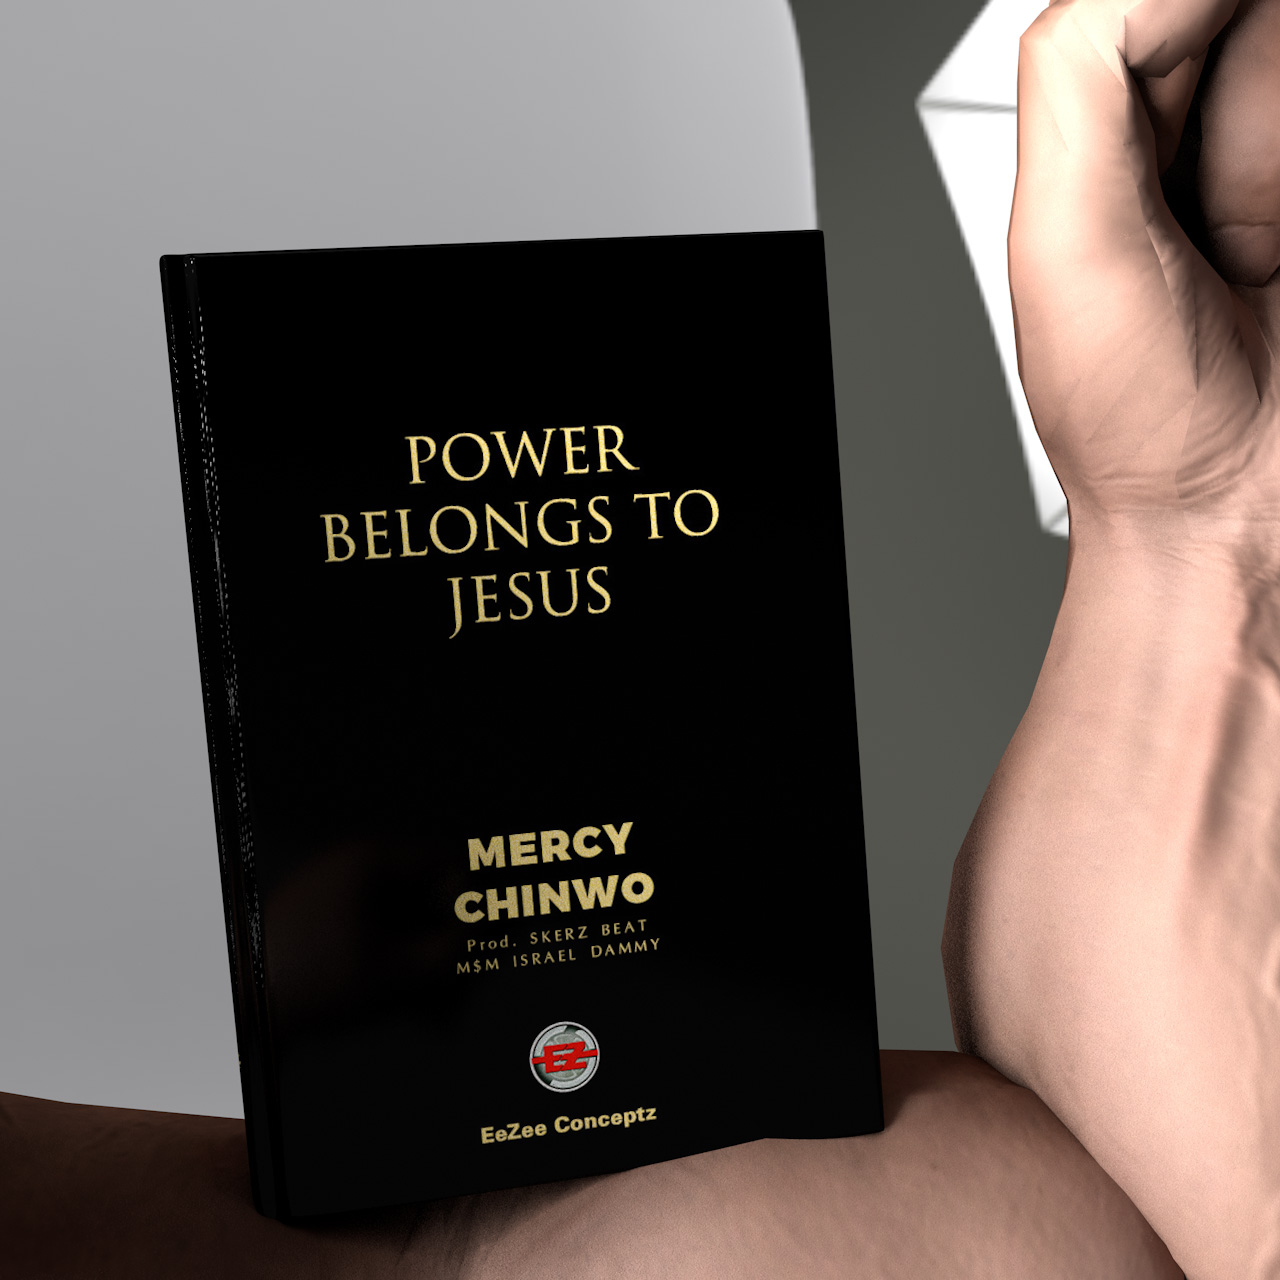 [Music] Downlaod Mercy Chinwo - Power belongs to Jesus